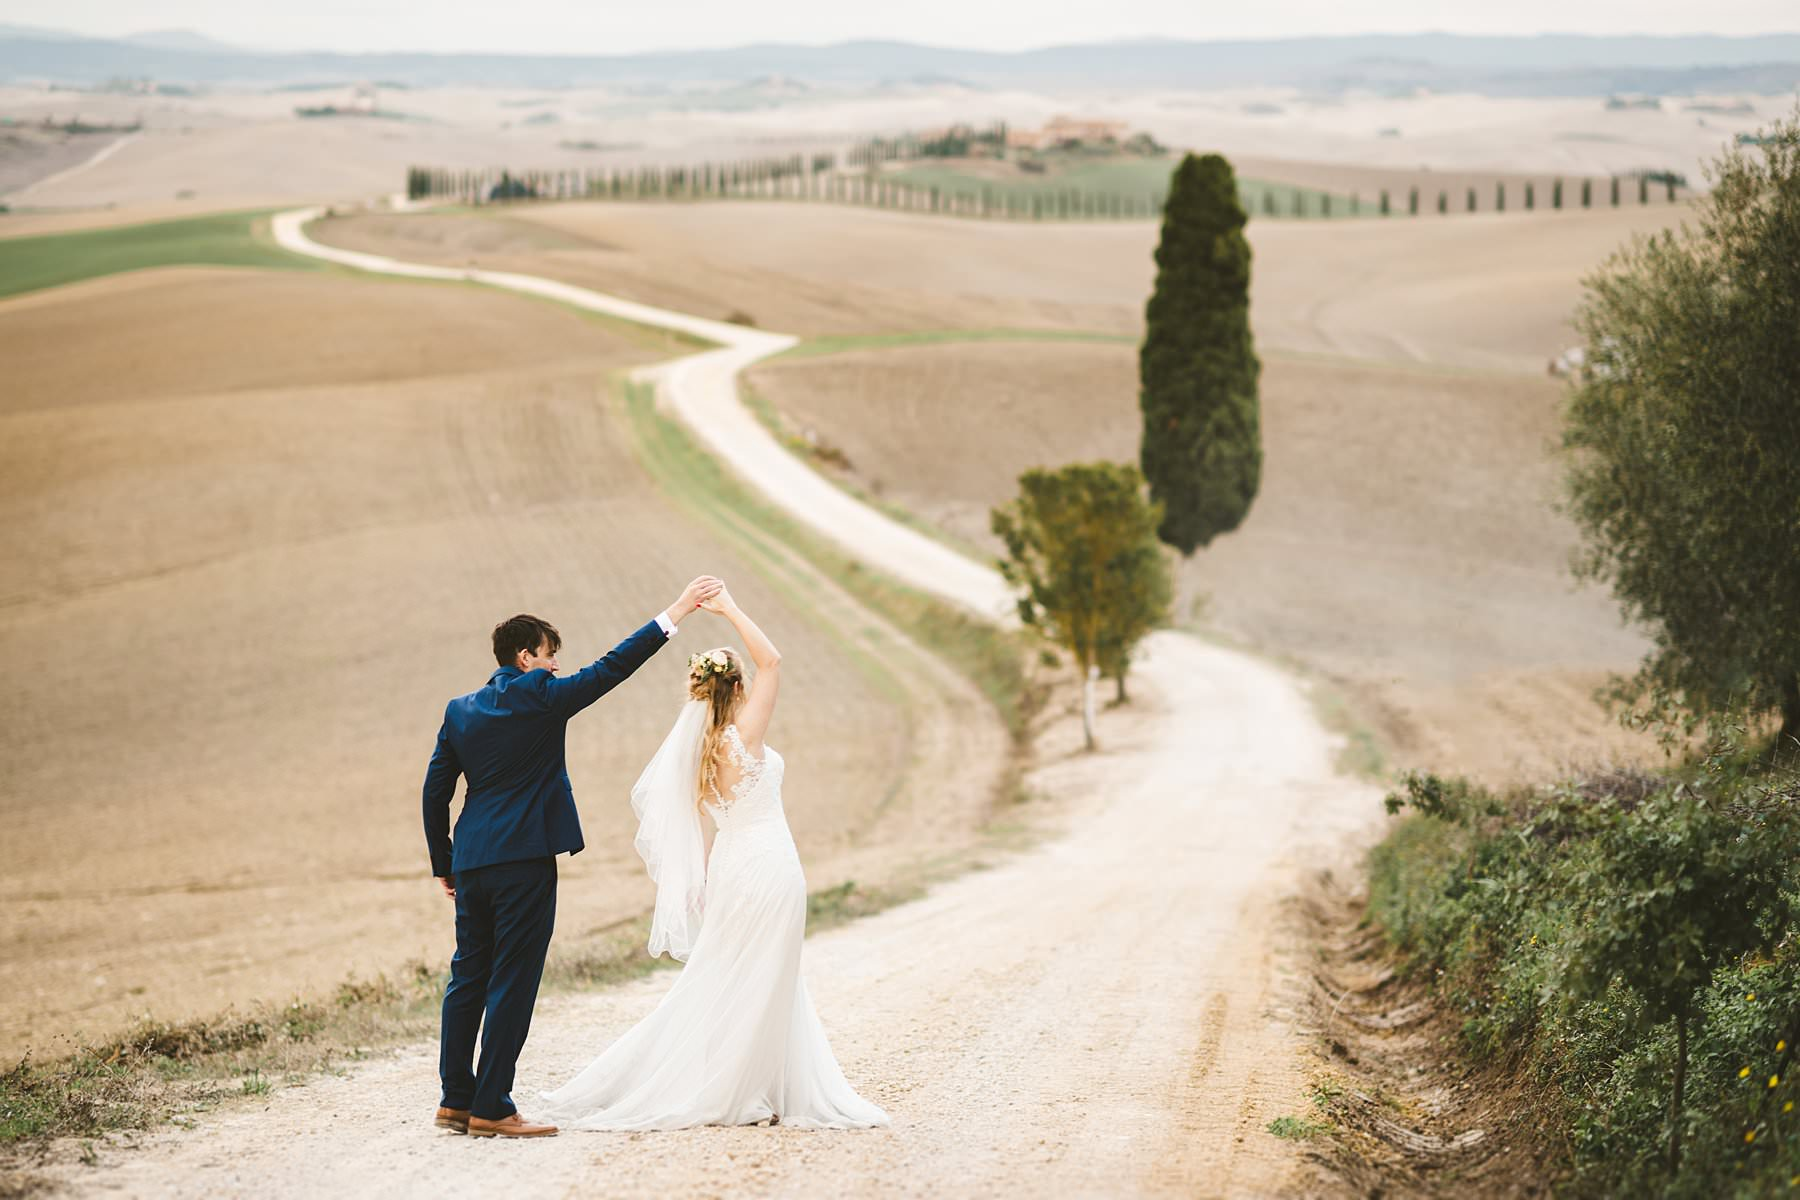 Poppy and Chris's elopement, a dream that finally came true. Lovely couple from UK portrayed with the splendid rolling hills of Tuscany countryside as background